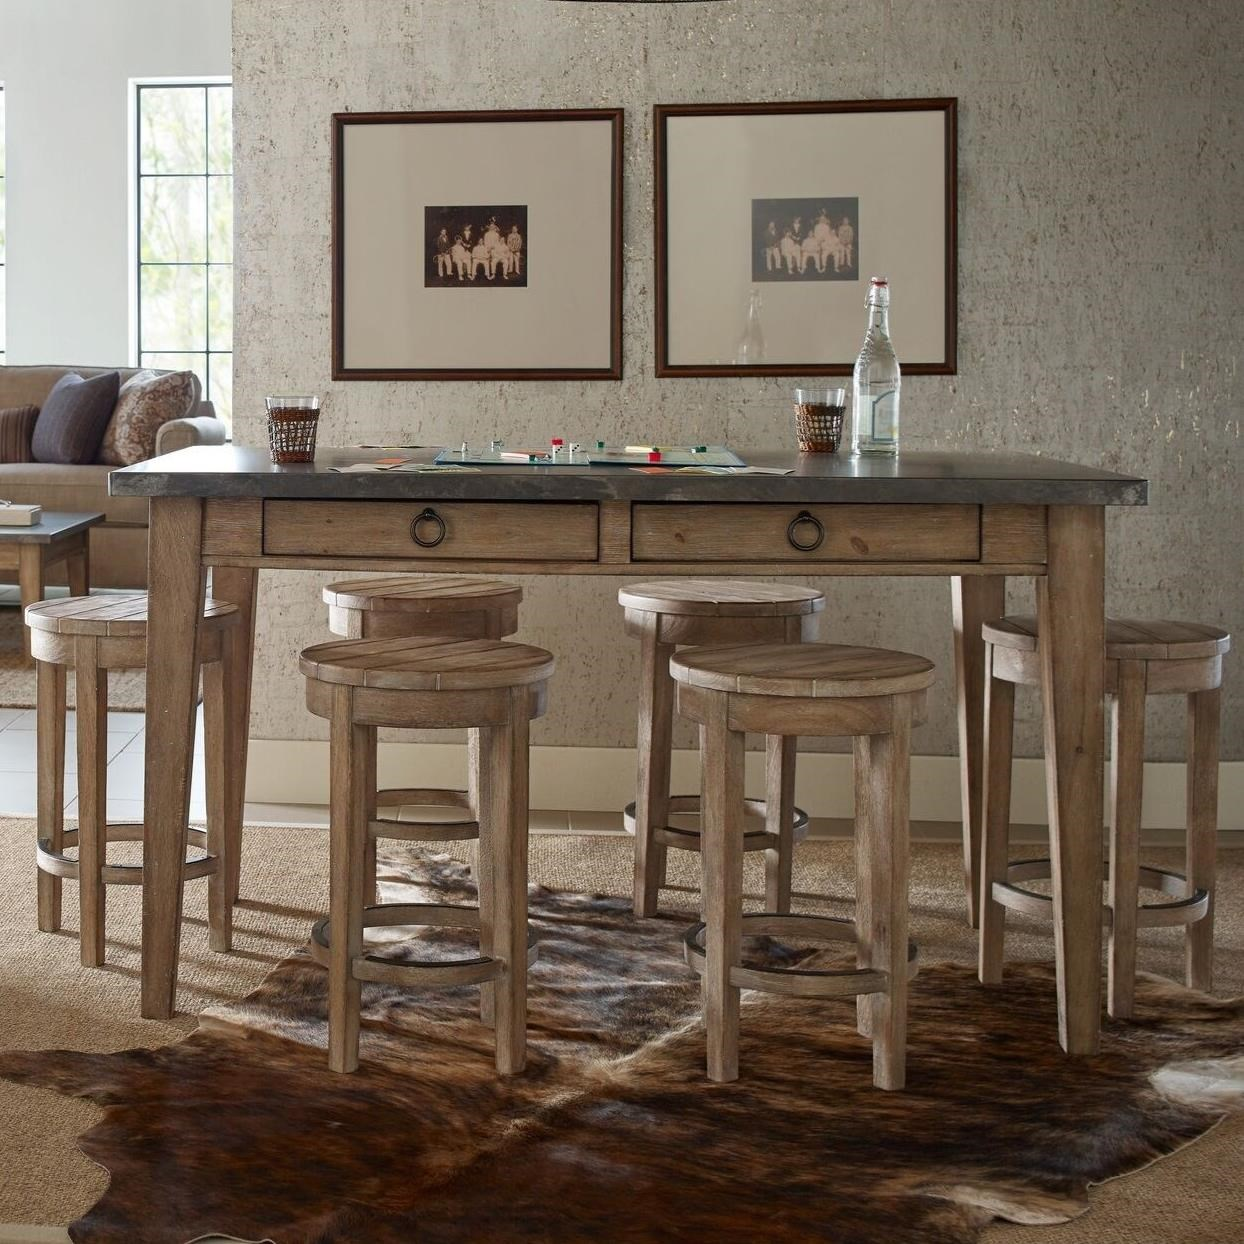 Monteverdi  7 Piece Counter Height Pub Dining Set by Rachael Ray Home by Legacy Classic at Fashion Furniture